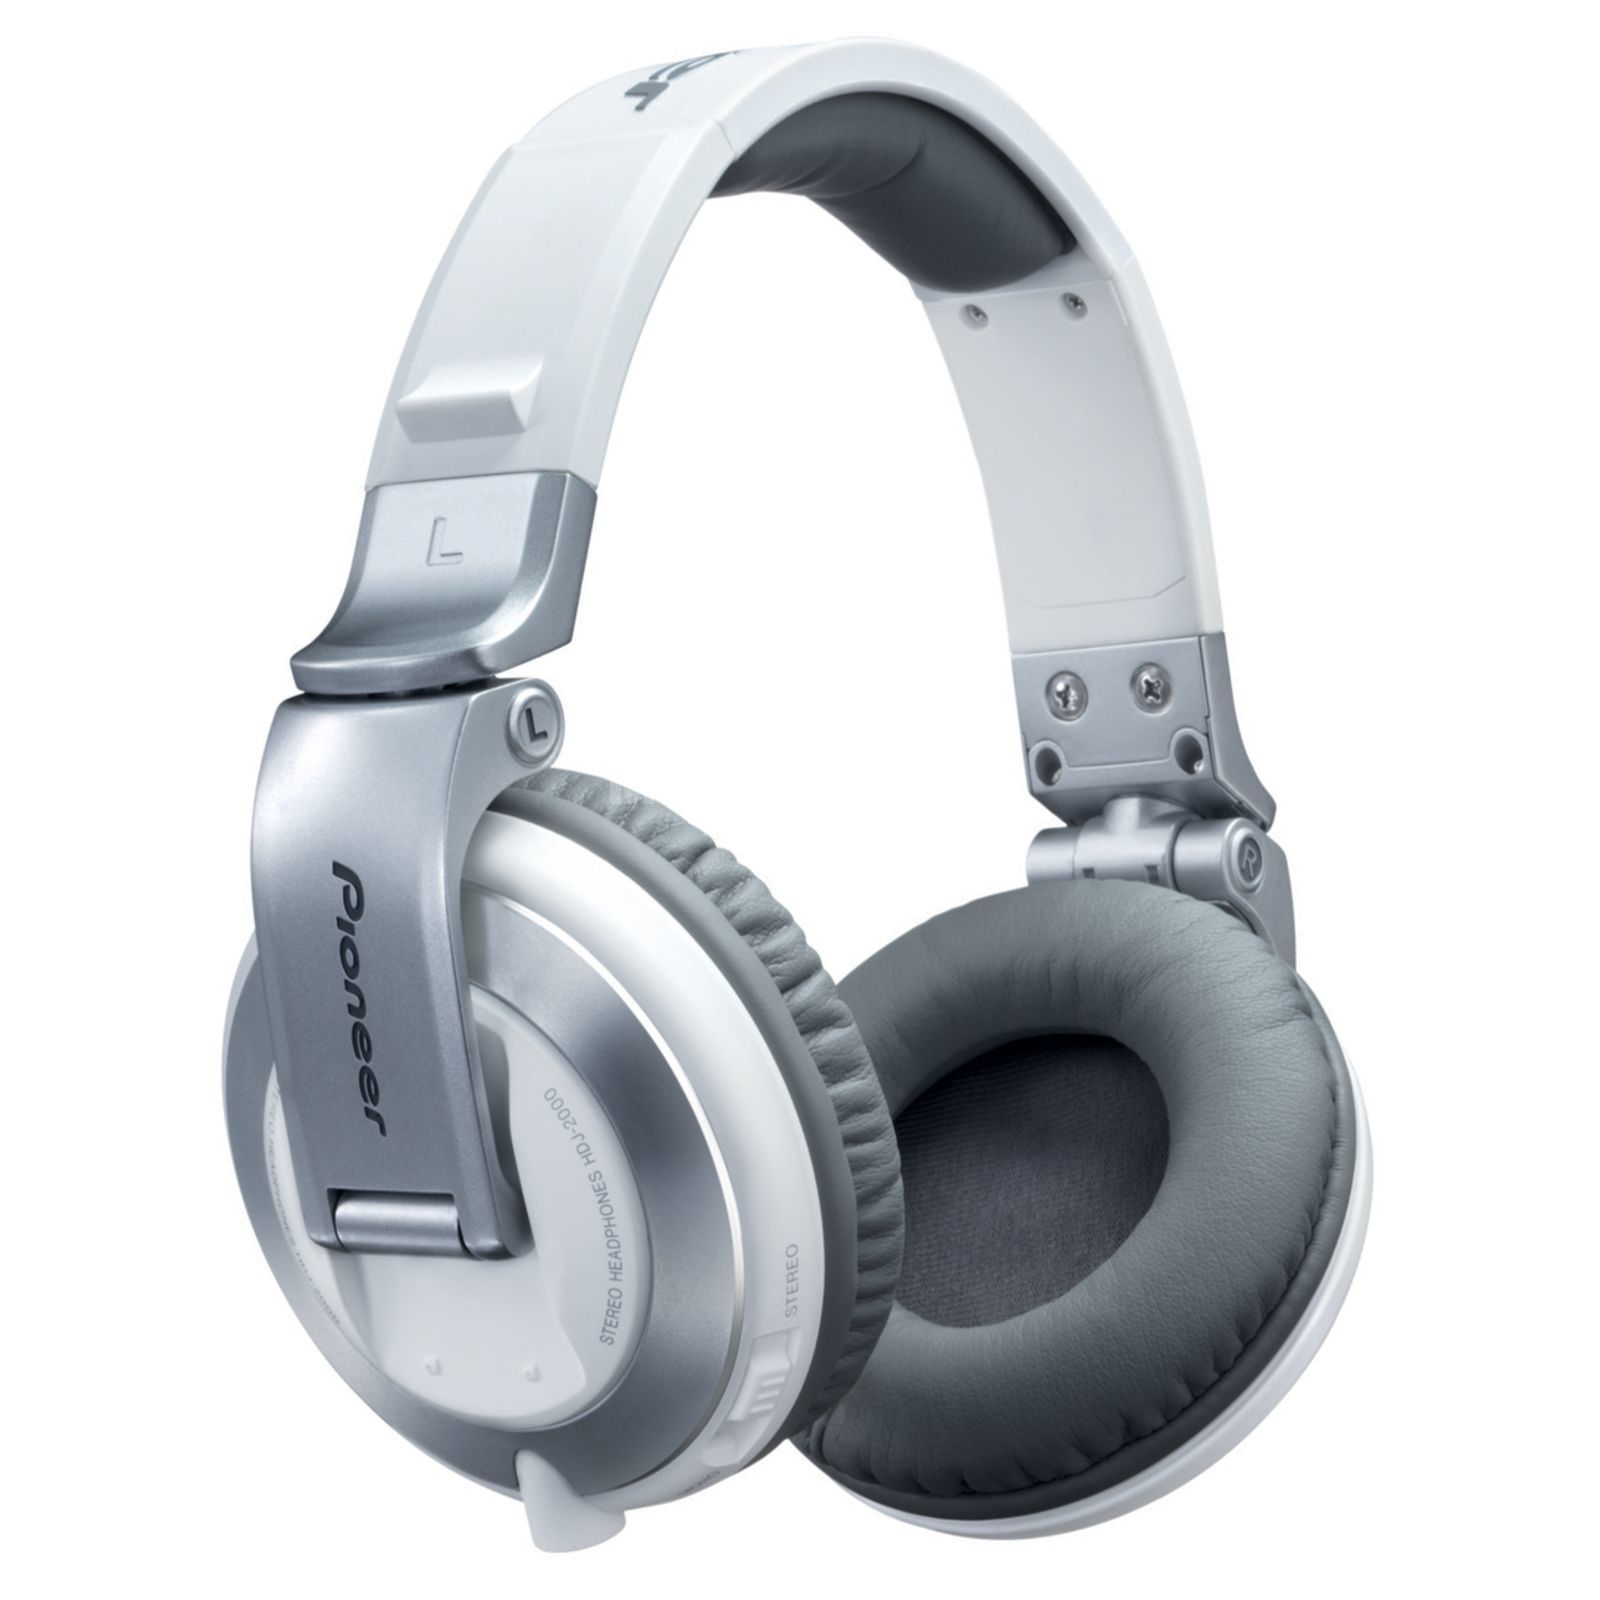 Pioneer DJ HDJ-2000-W High-End DJ Headphones, White Immagine prodotto